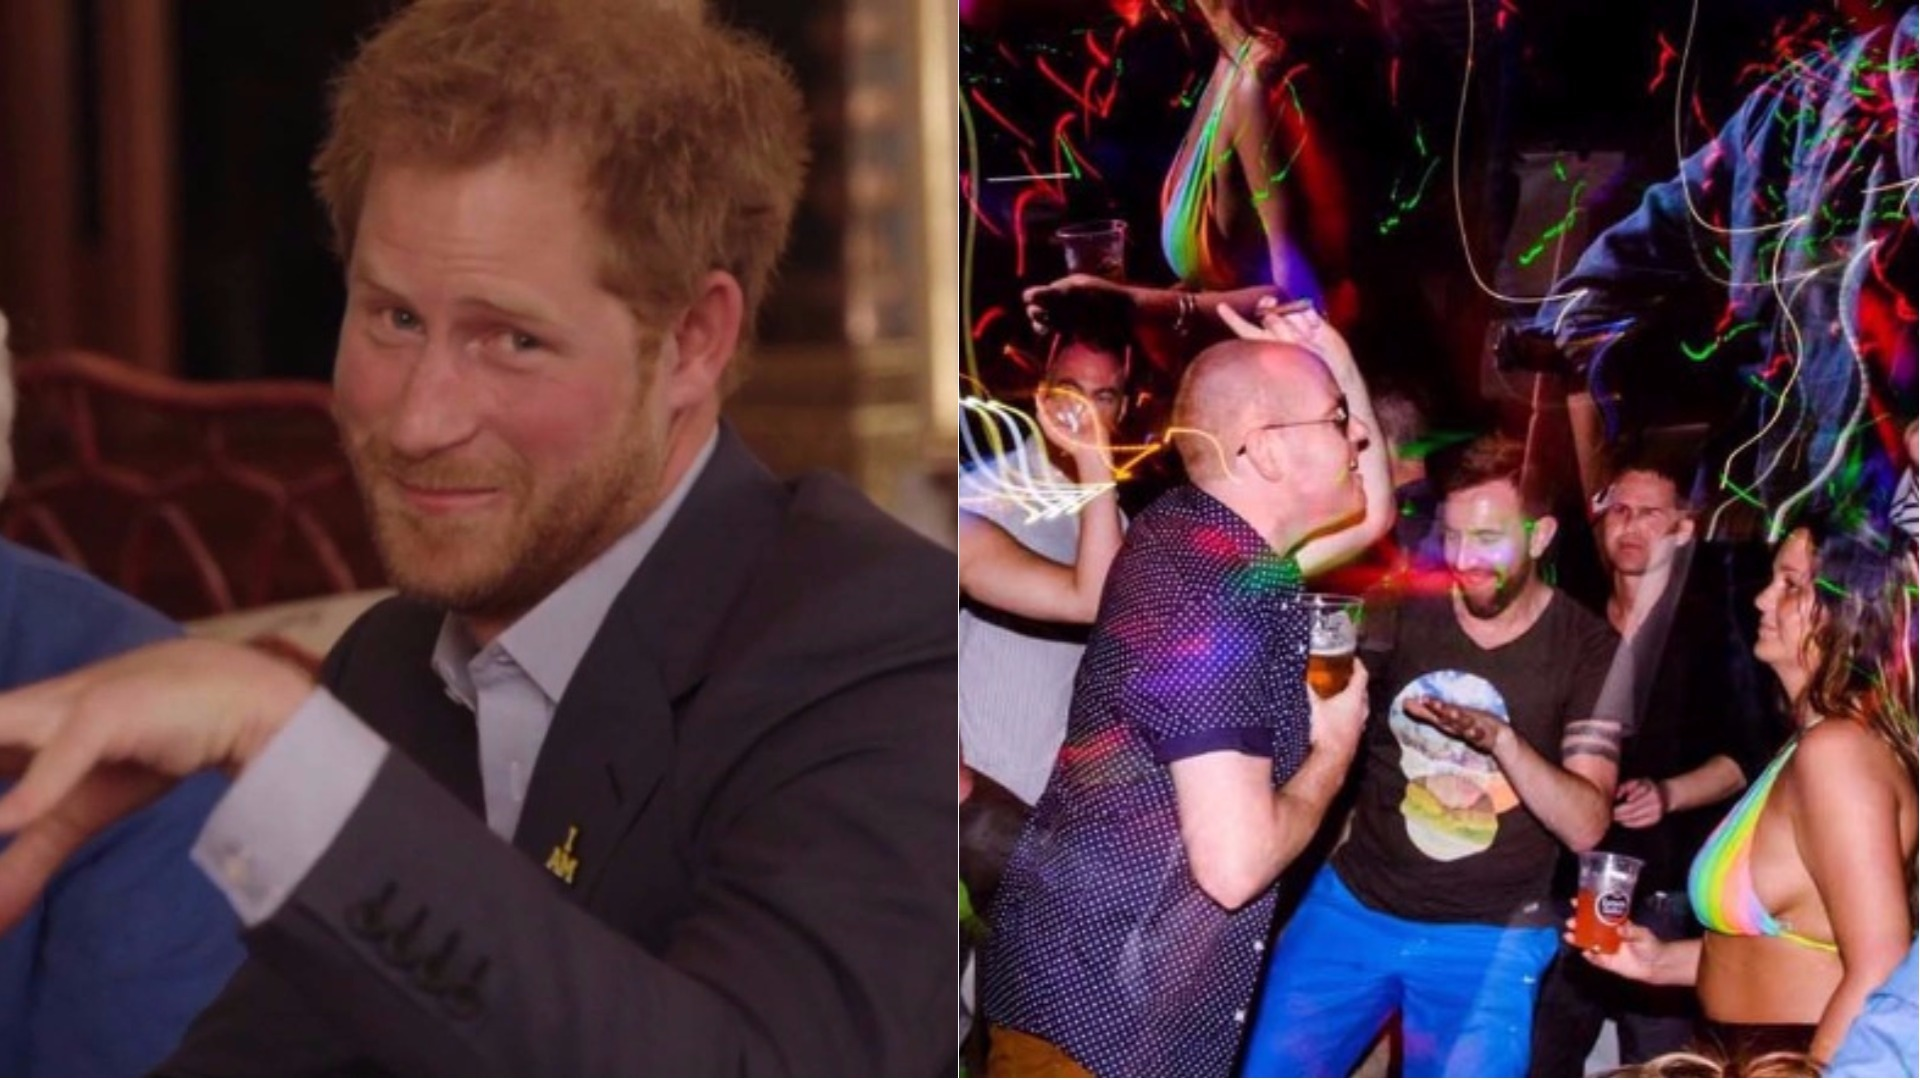 Prince Harry's stag do.